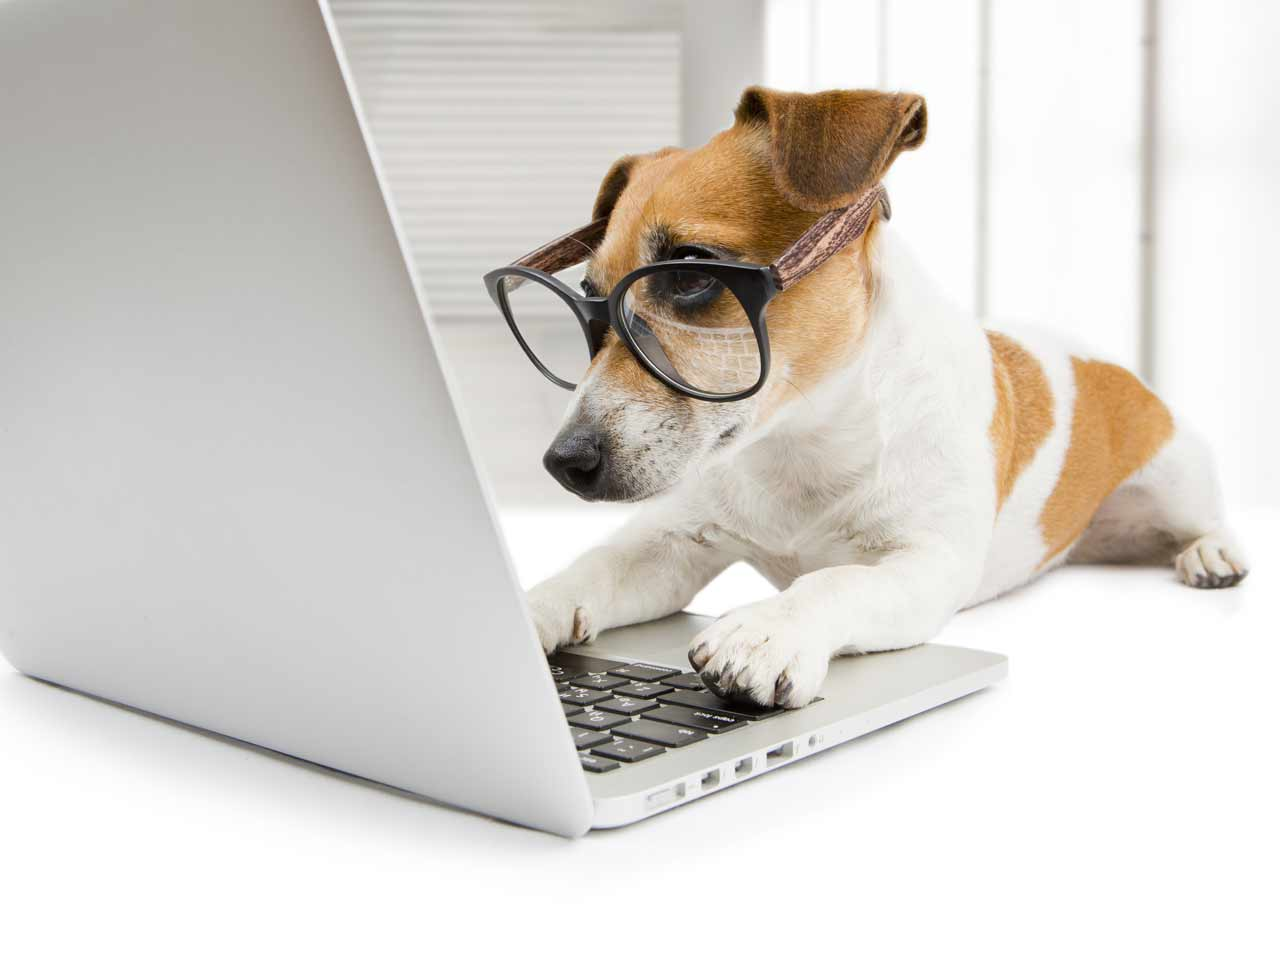 Terrier looking at computer screen